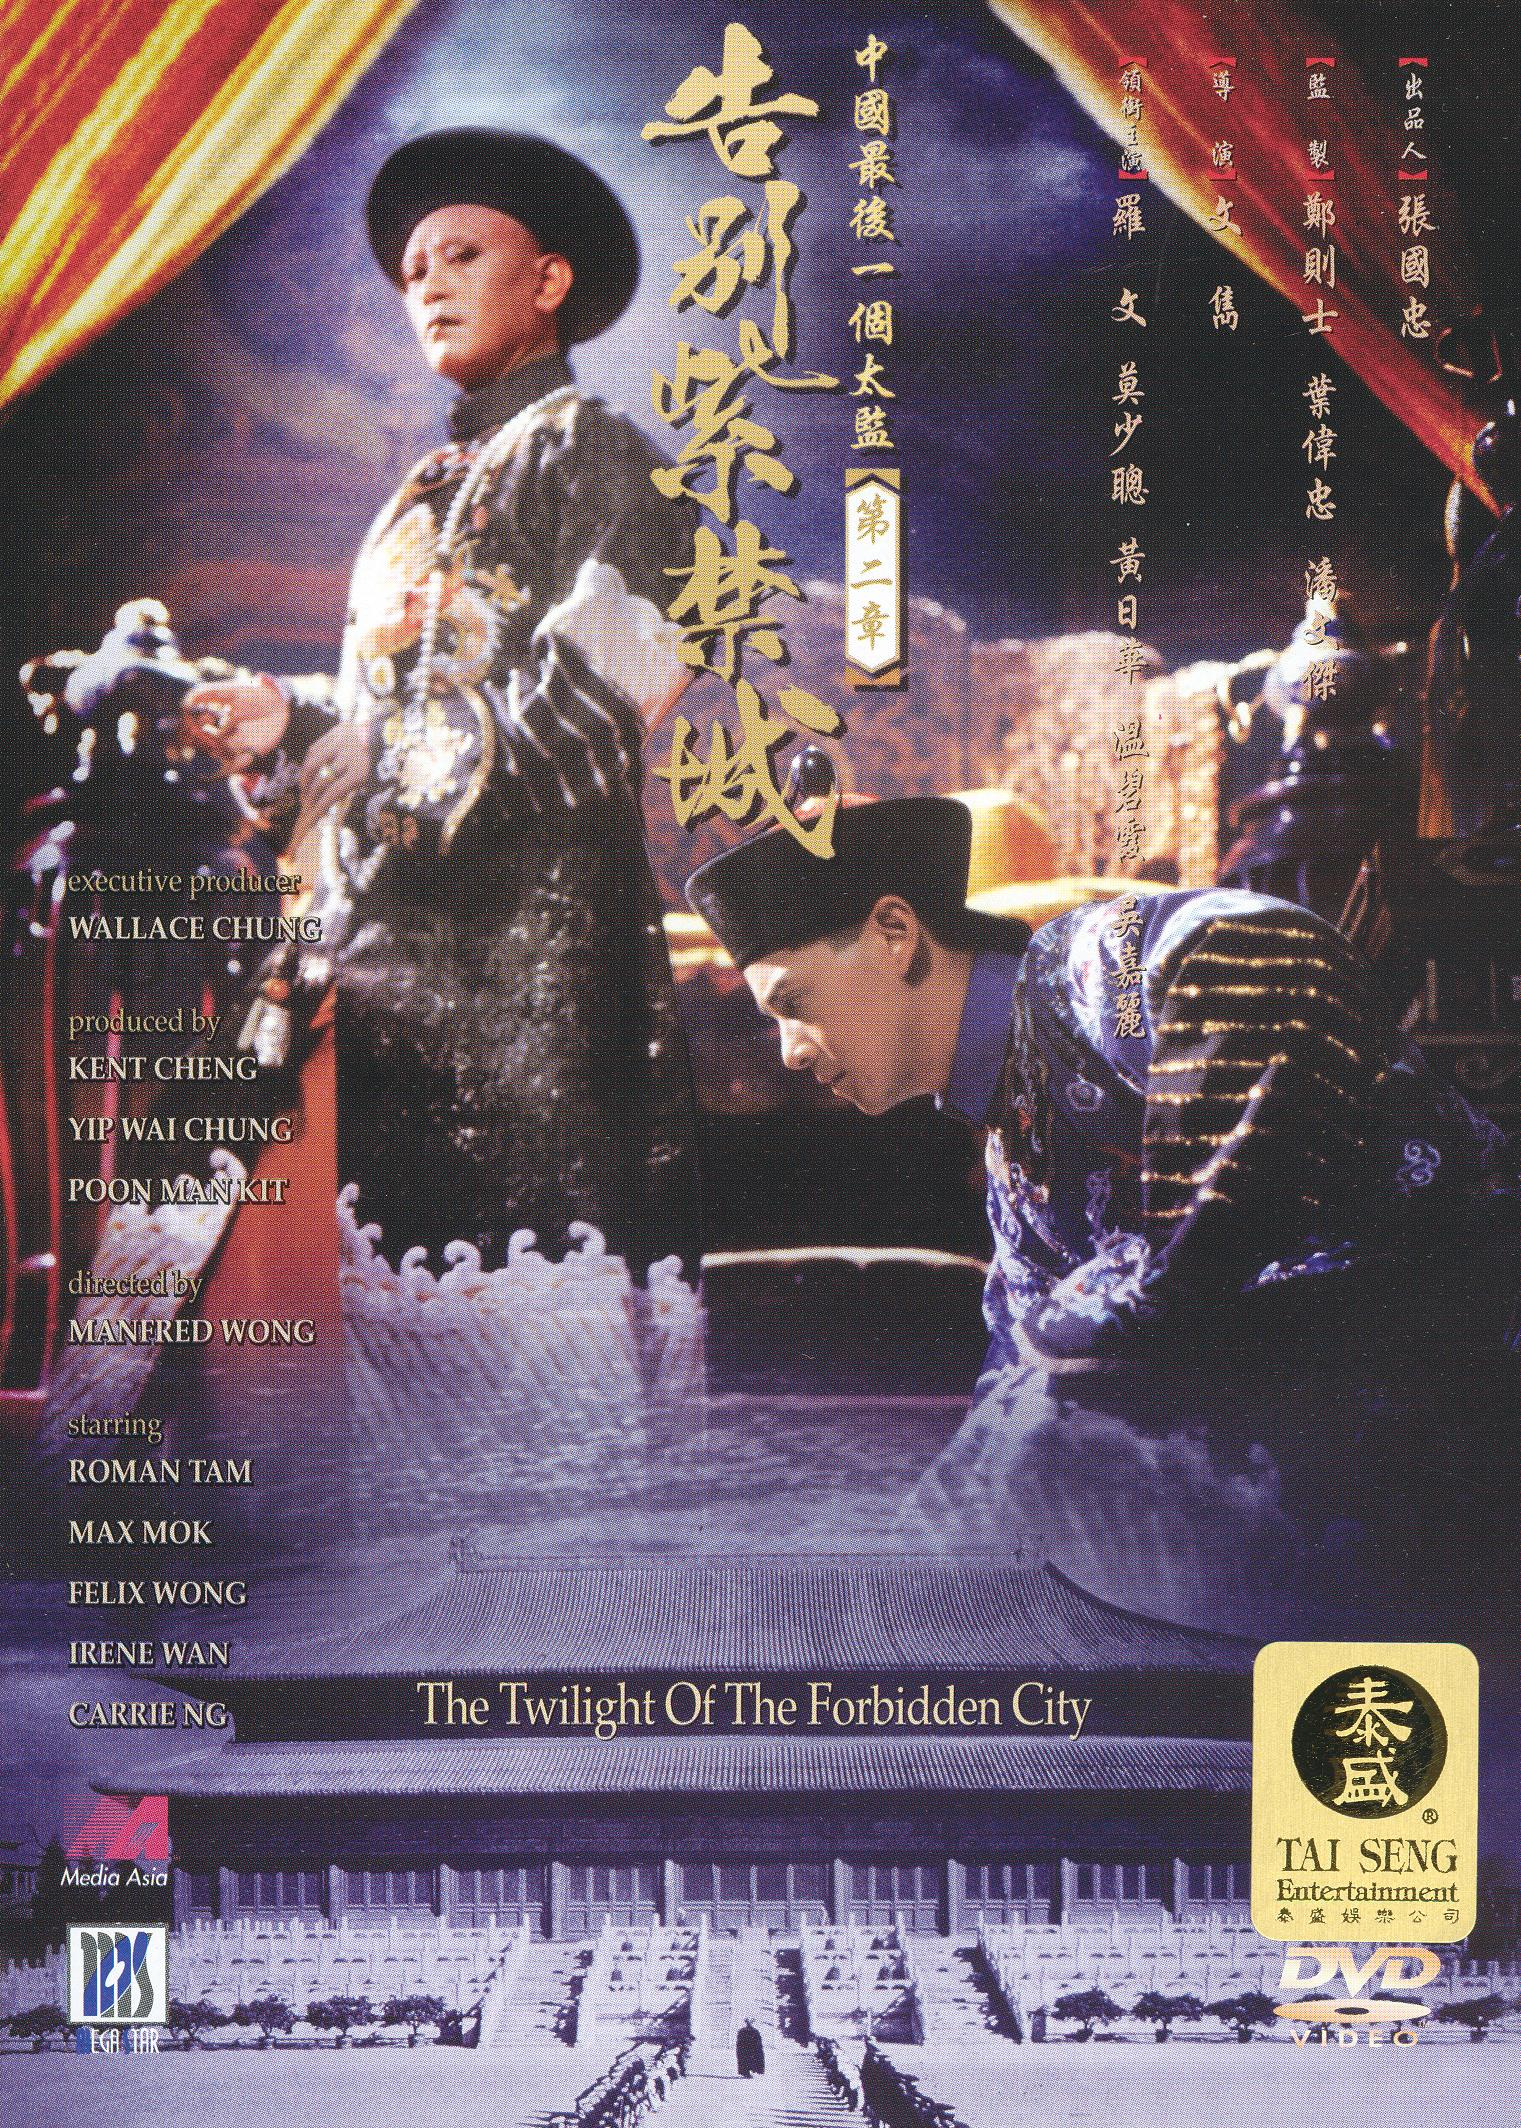 The Twilight of the Forbidden City